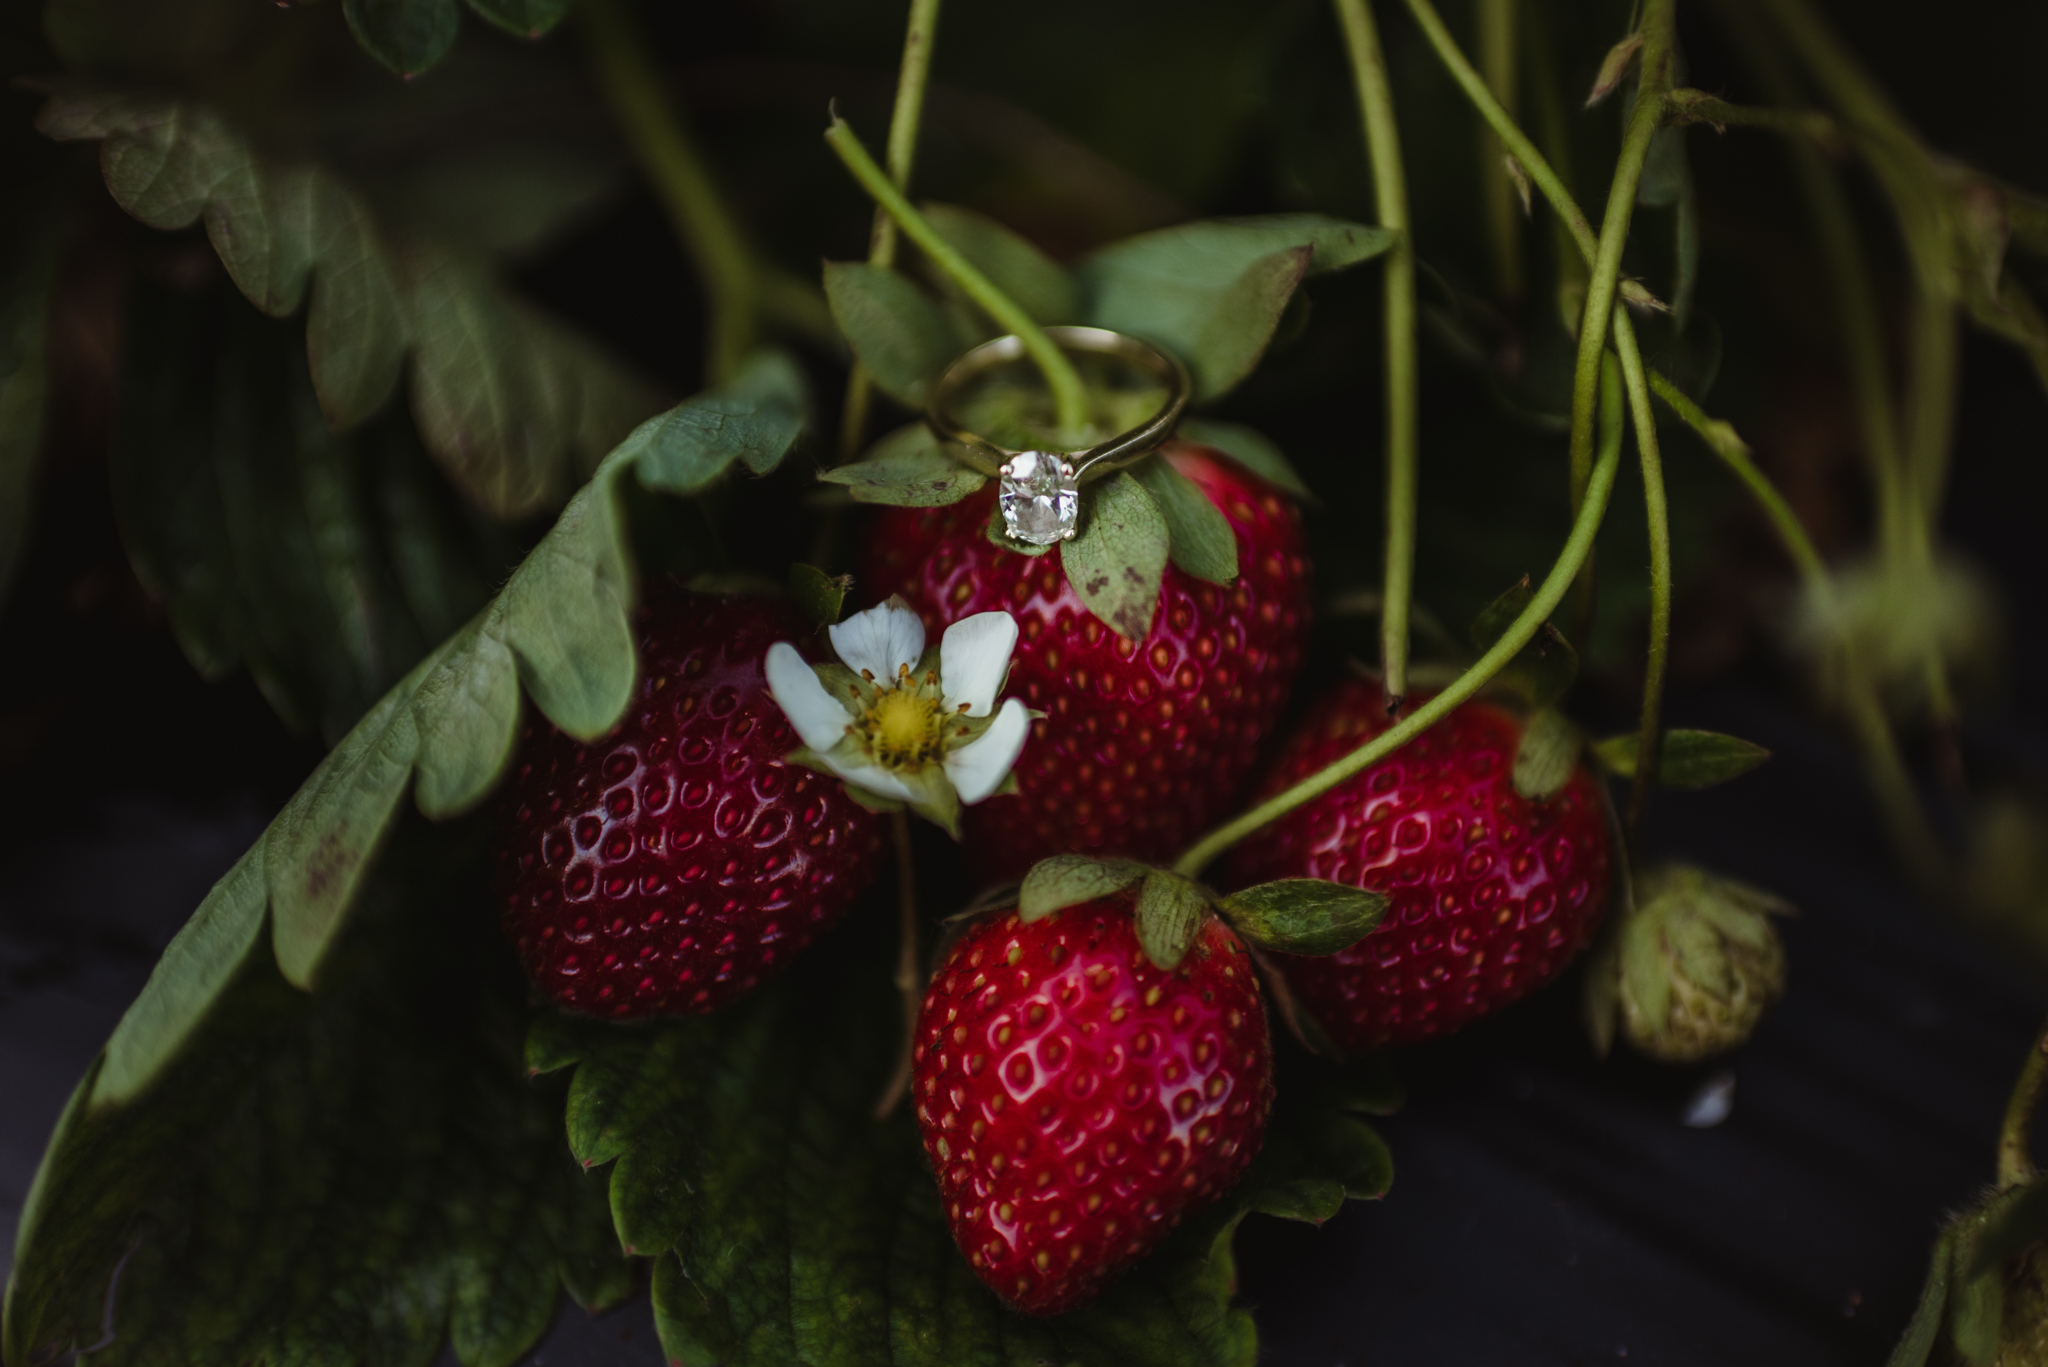 The engagement ring sits in the strawberry patch for their engagement pictures with Rose Trail Images at their family farm in Benson, North Carolina.